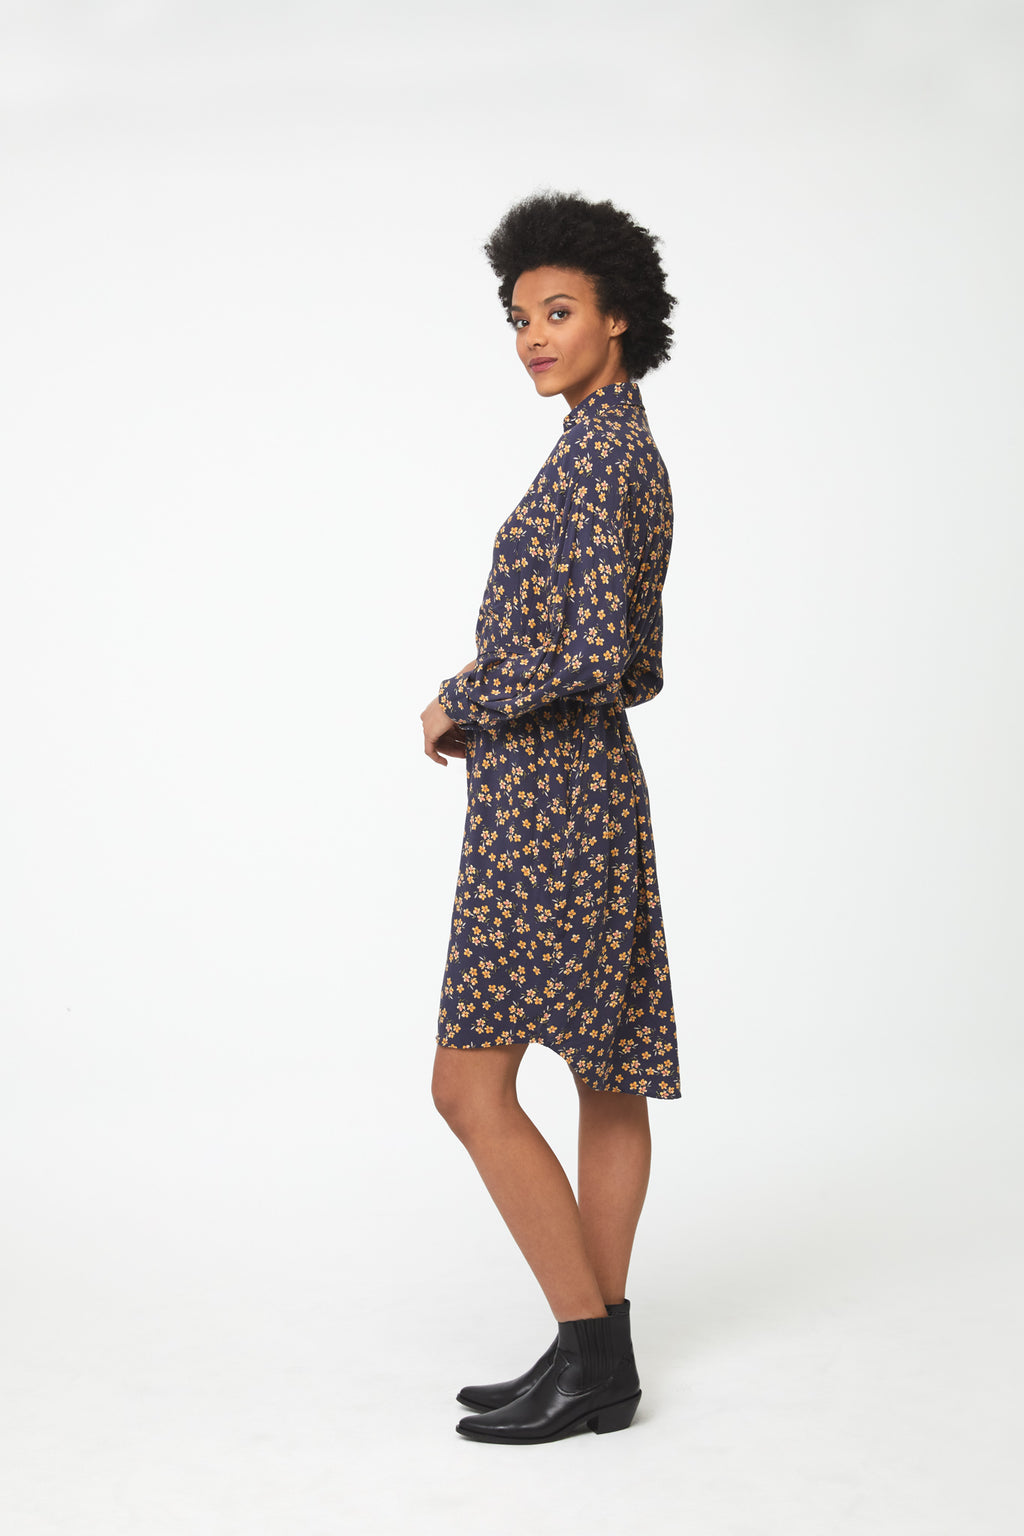 Side view woman wearing navy floral print, long sleeve, collared, button-front shirt dress with self-belt